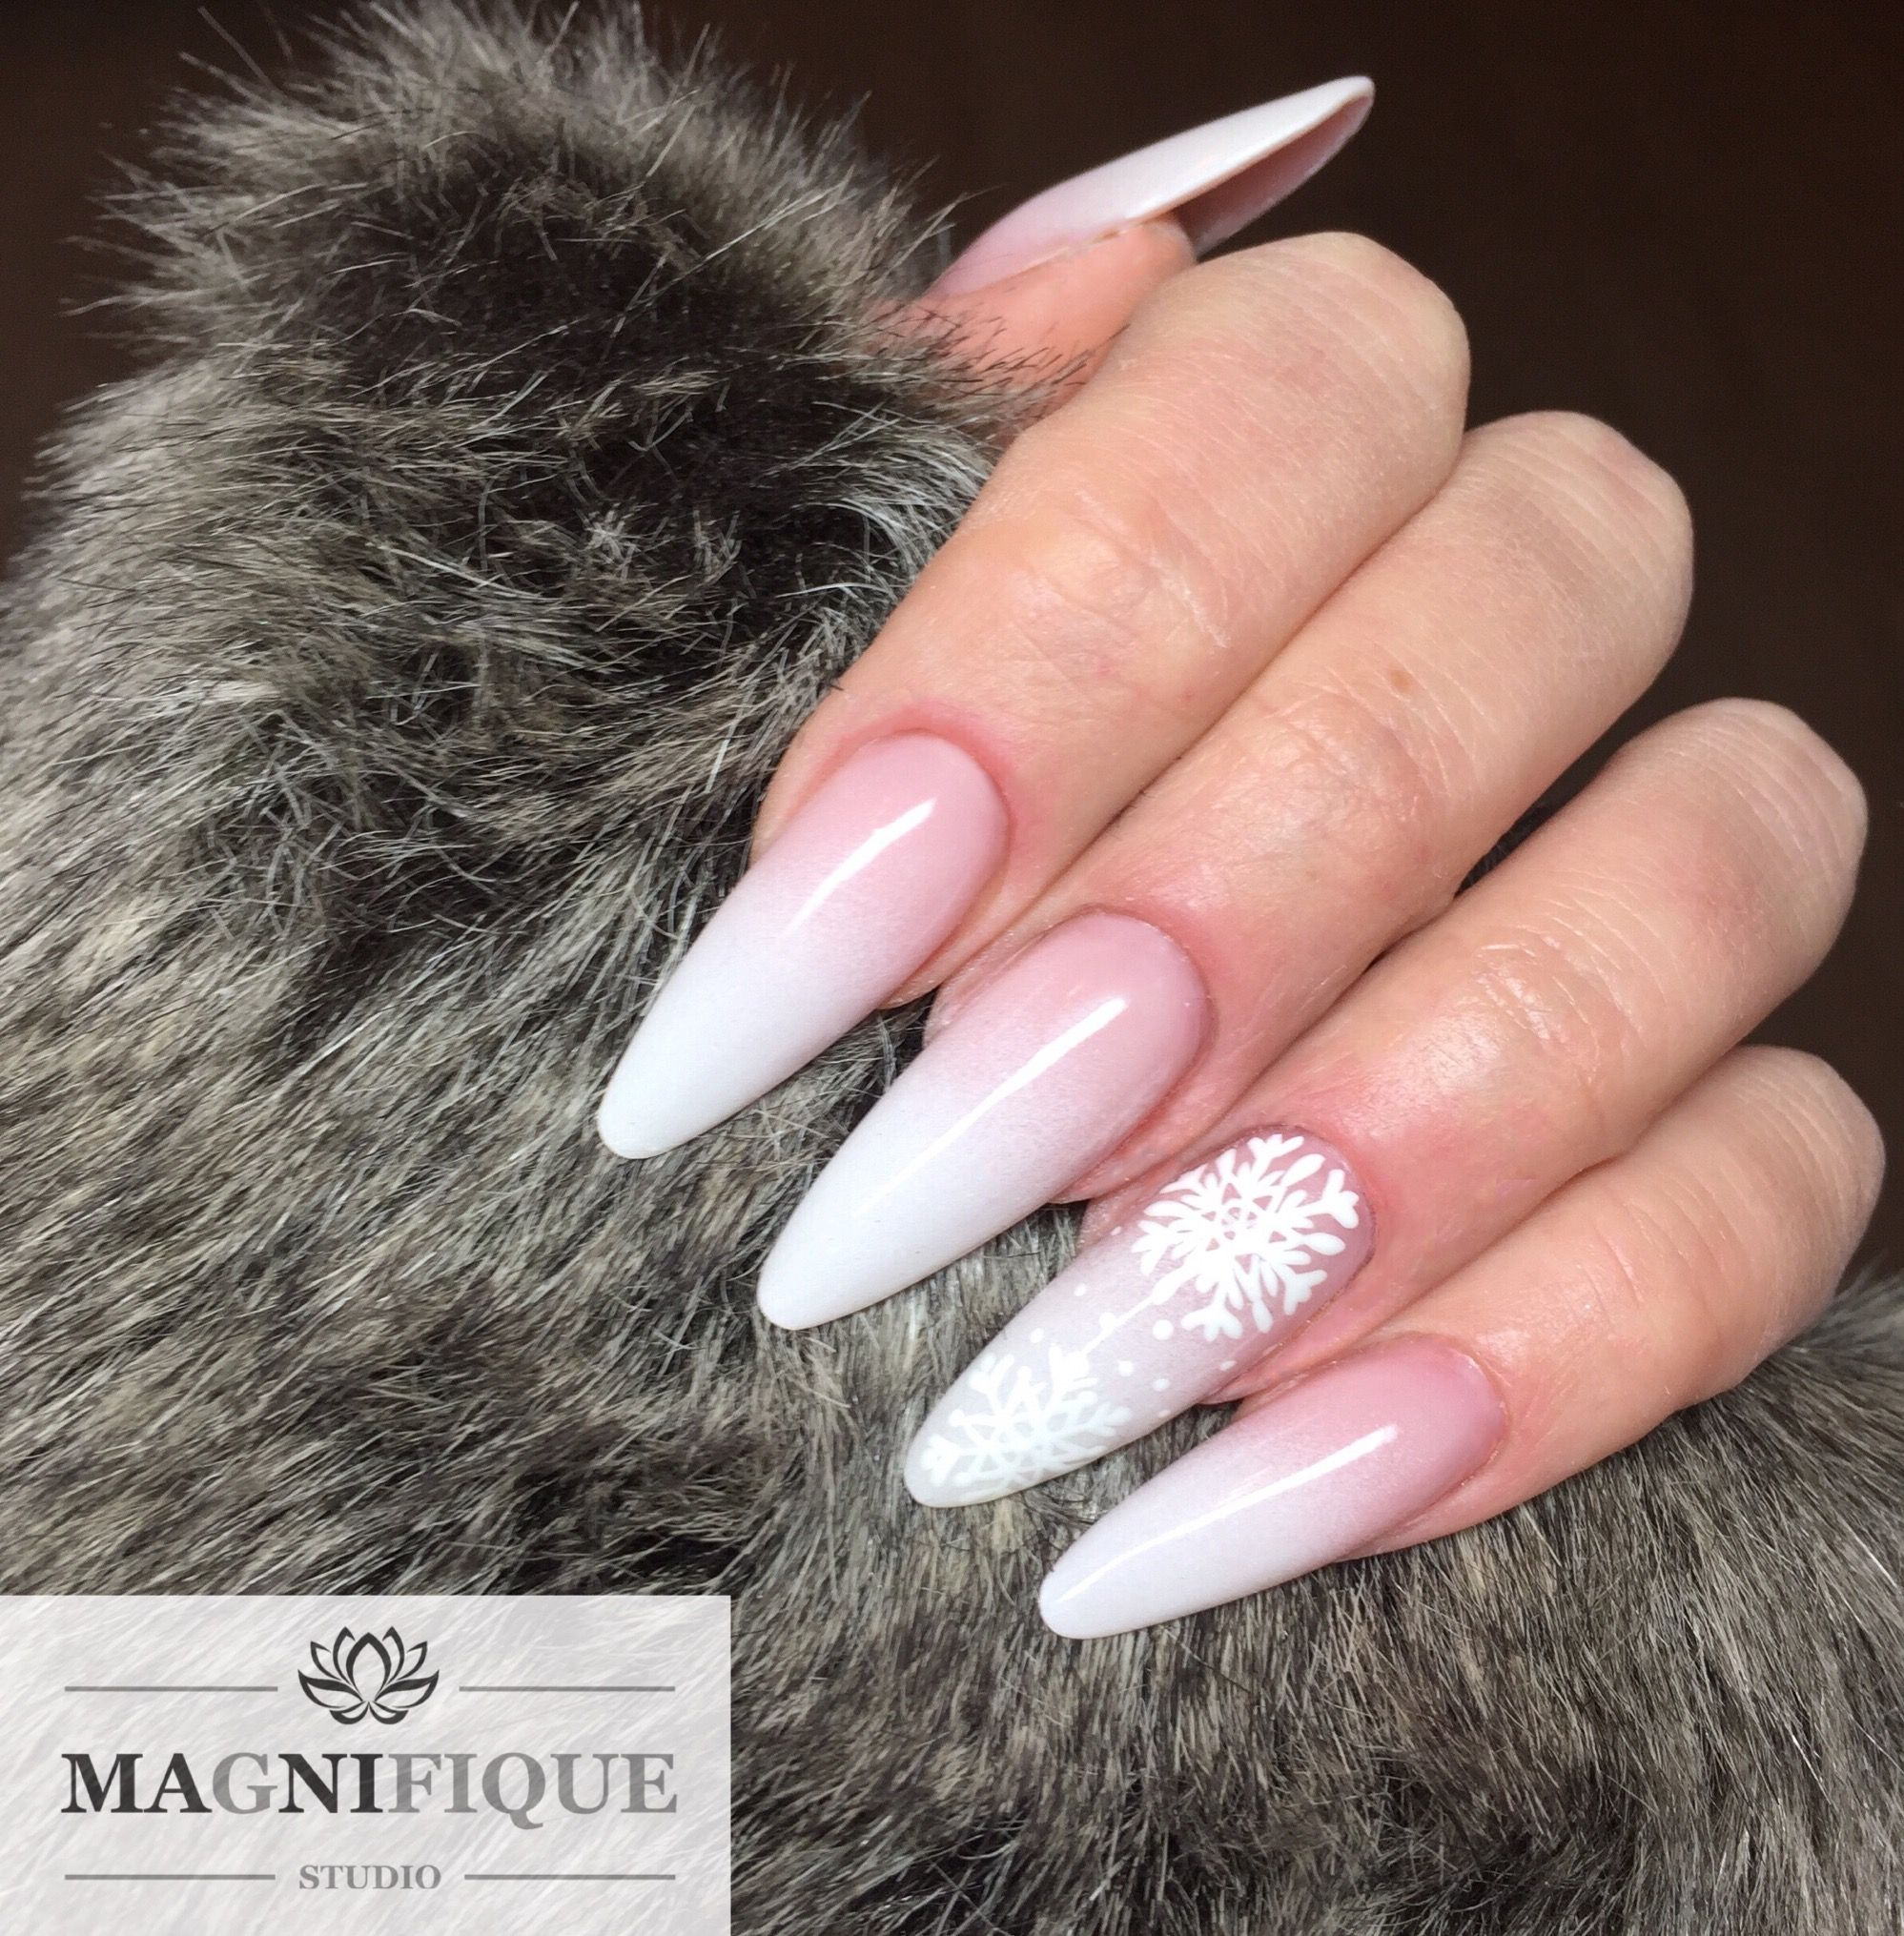 About baby boomer nail art tutorial by nded on pinterest nail art - Babyboomer Nails Winter Xmas Nails